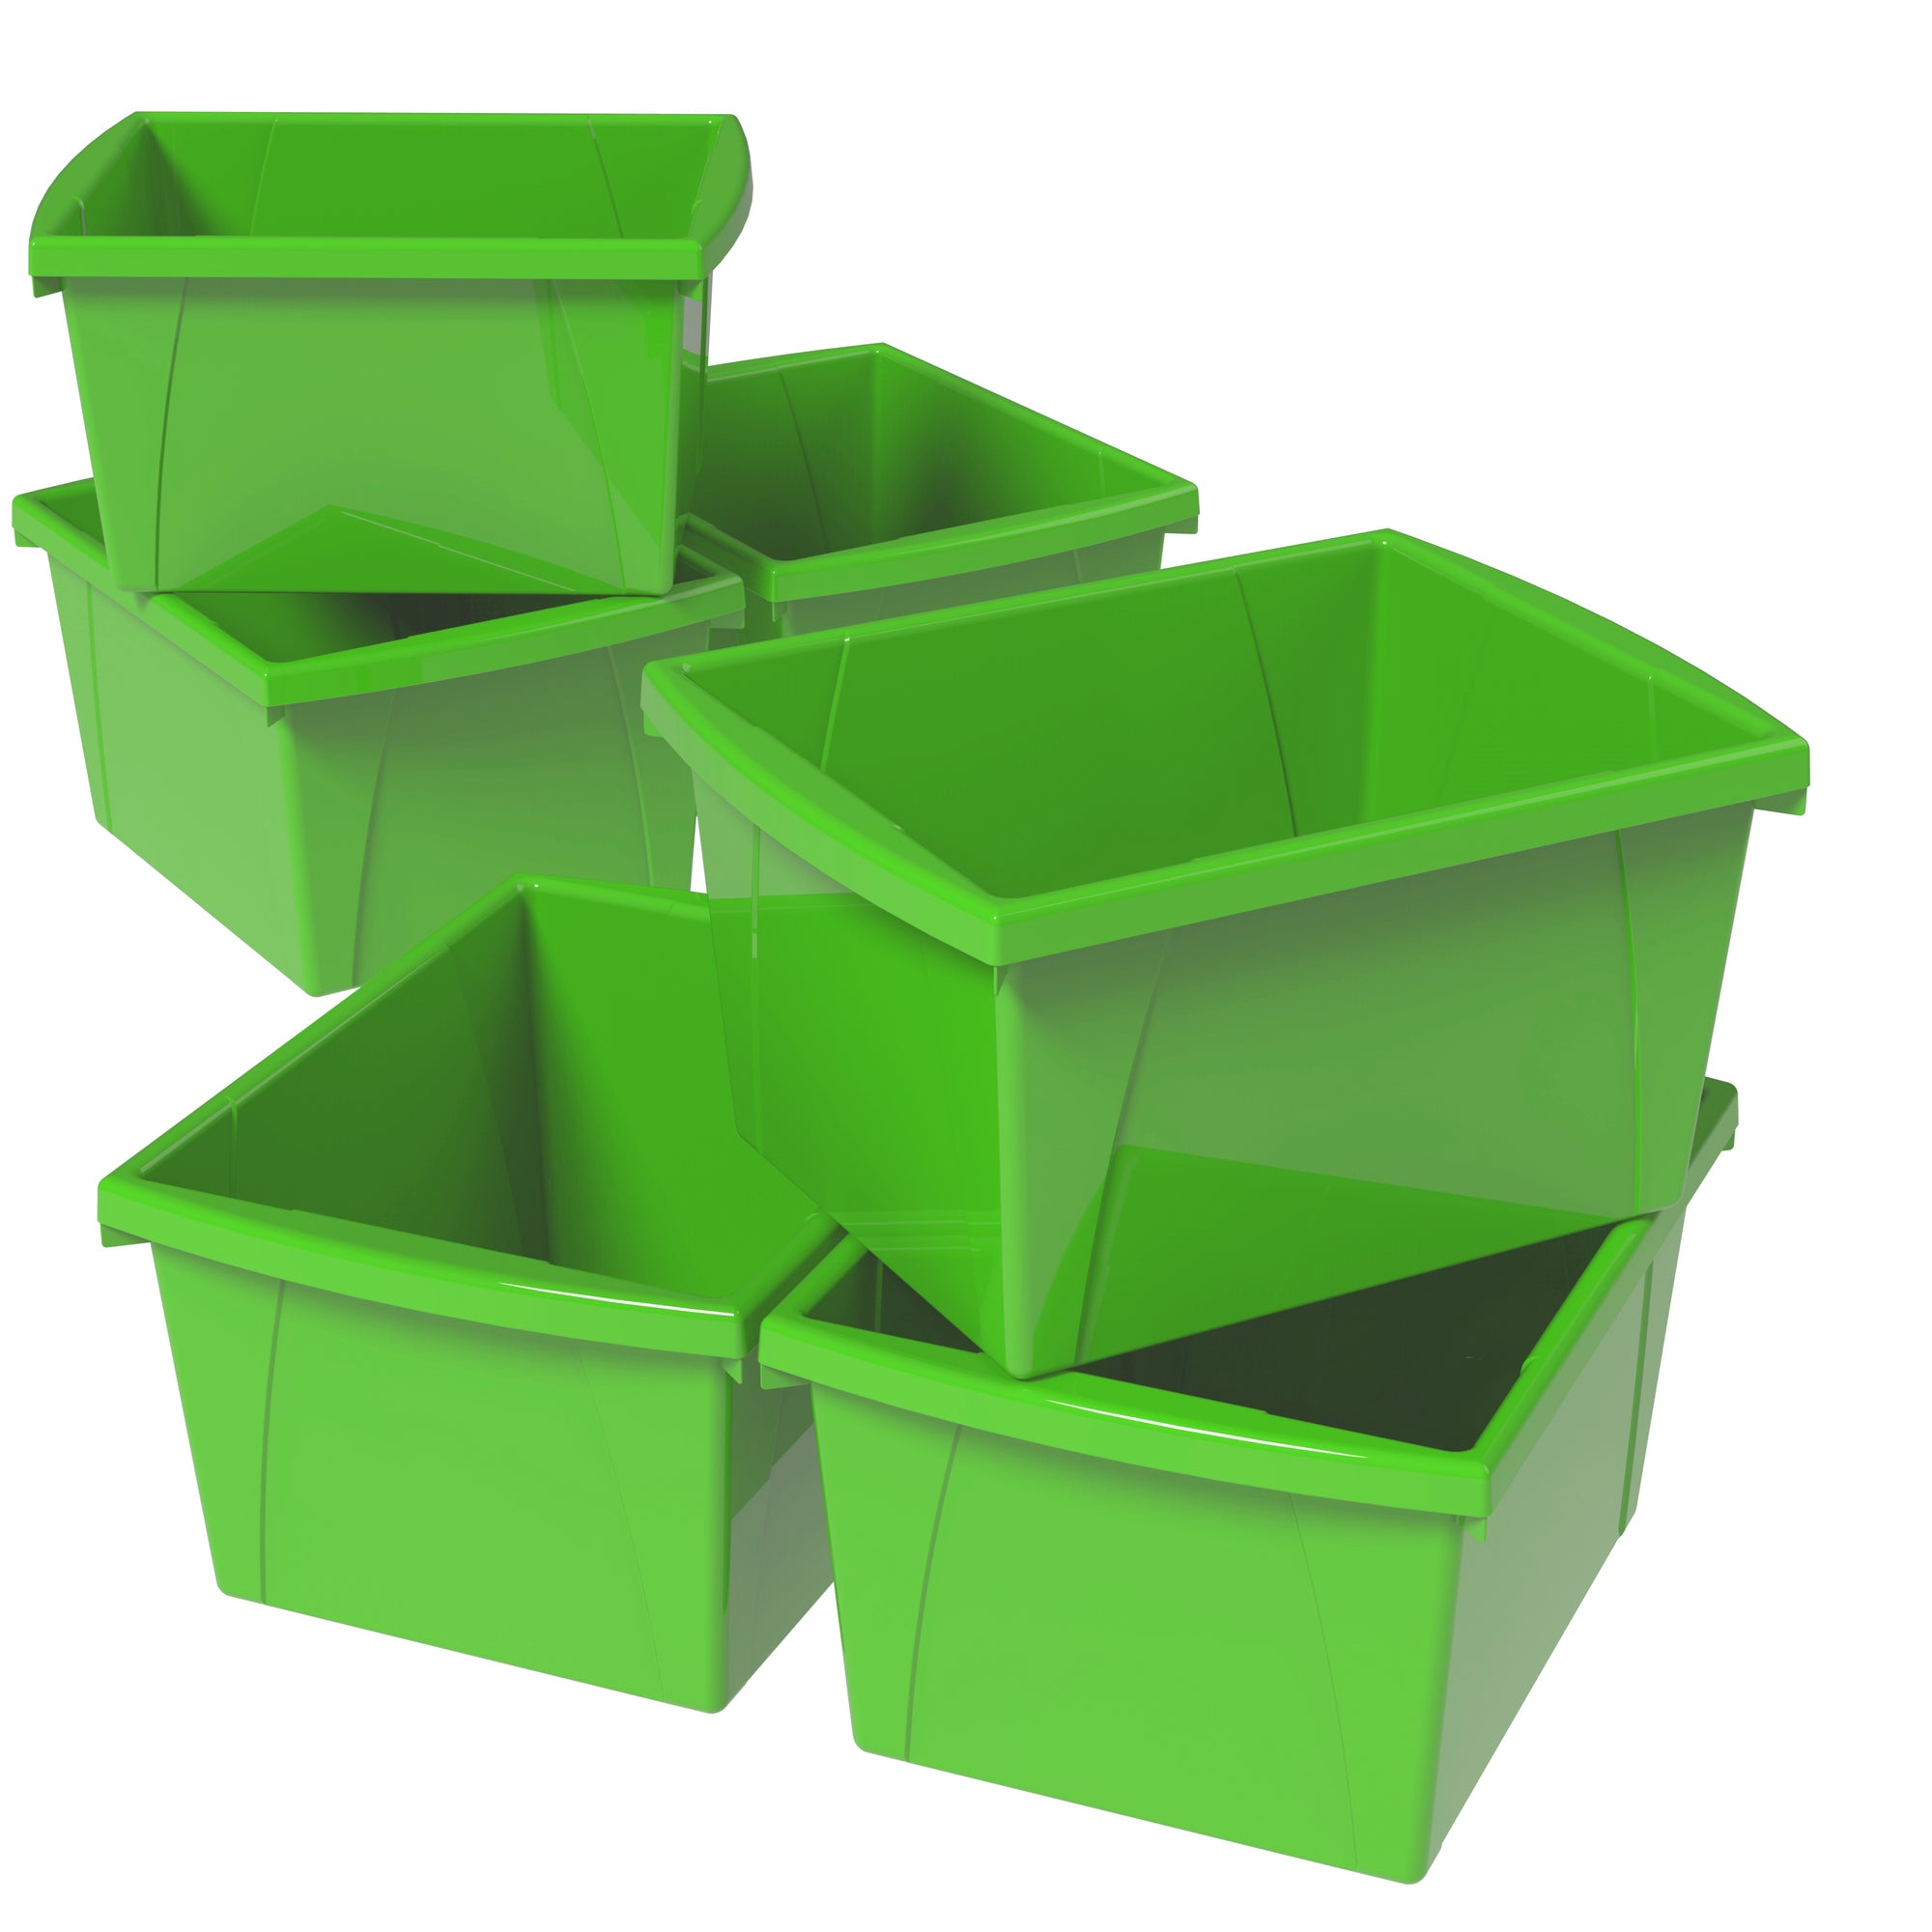 4 Gallon Storage Bin, Green (6 units/pack )